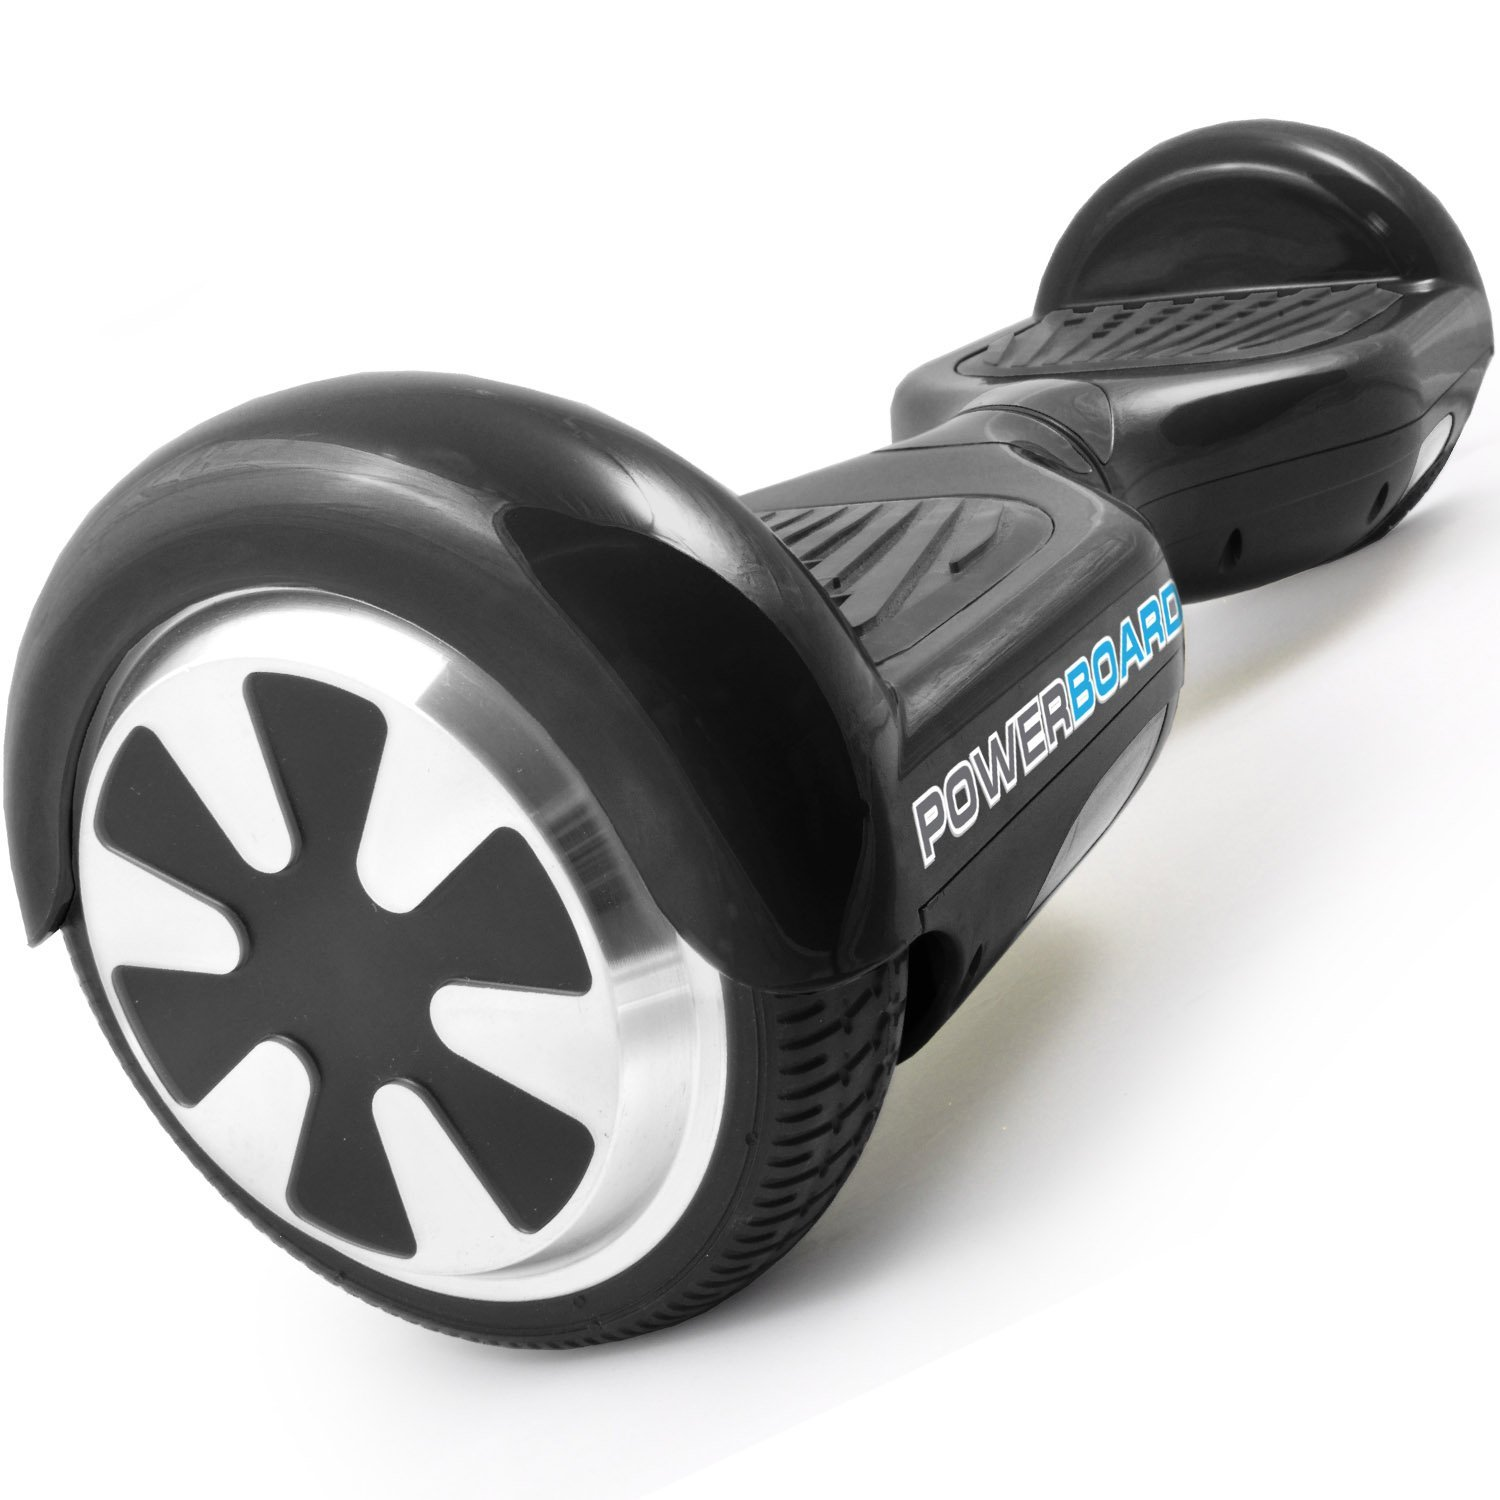 Top 3 safest self-balancing scooters